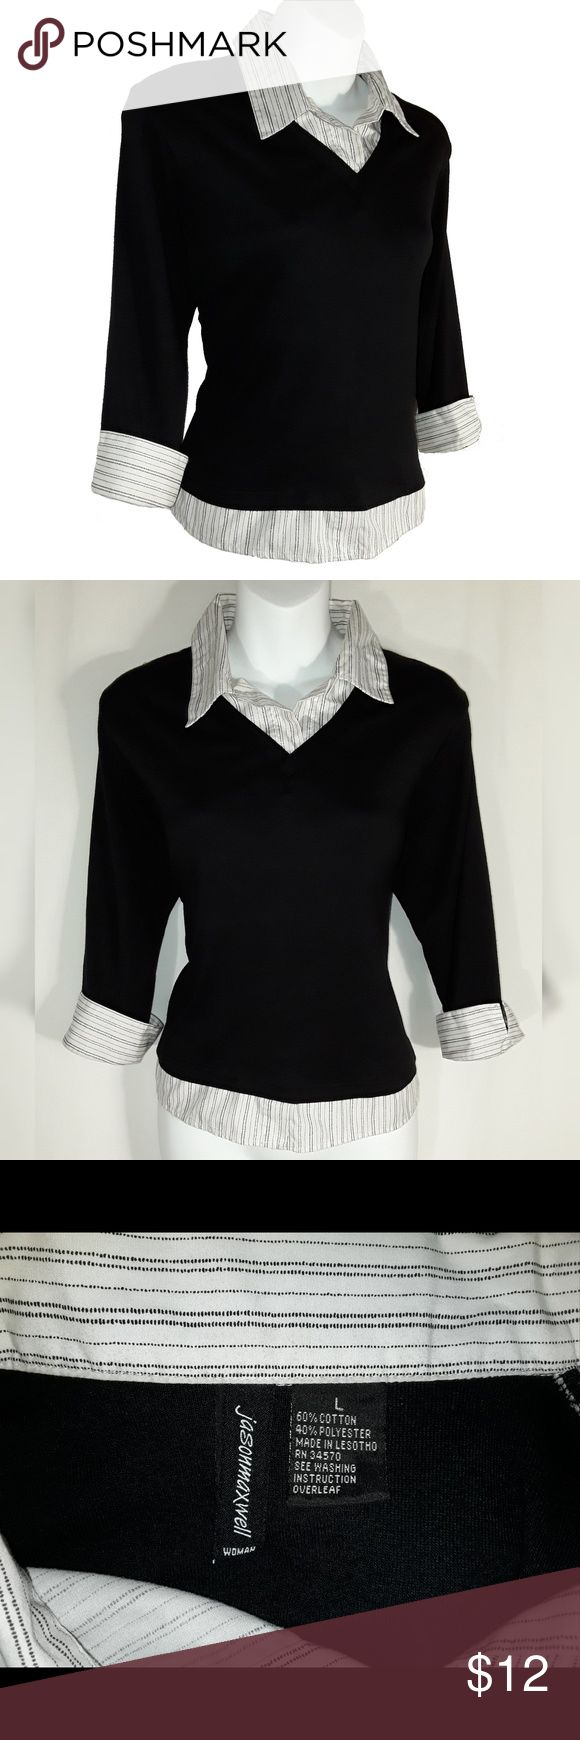 Black with Stripes Layered Look Collar Top Black top with a layered look. Made by Jasonmaxwell. Size Large. Shirt in good used condition. Great work professional shirt. A good #GirlBoss top :) Shirt made to look like a stripped shirt is underneath. Cuffs roll up. Pairs great with black pants!  Flaw: Found a very small spot near neckline on the collar. I never noticed it until I was packaging (see last photo). Might be able to be rubbed out.  Please let me know if you have any questions or…